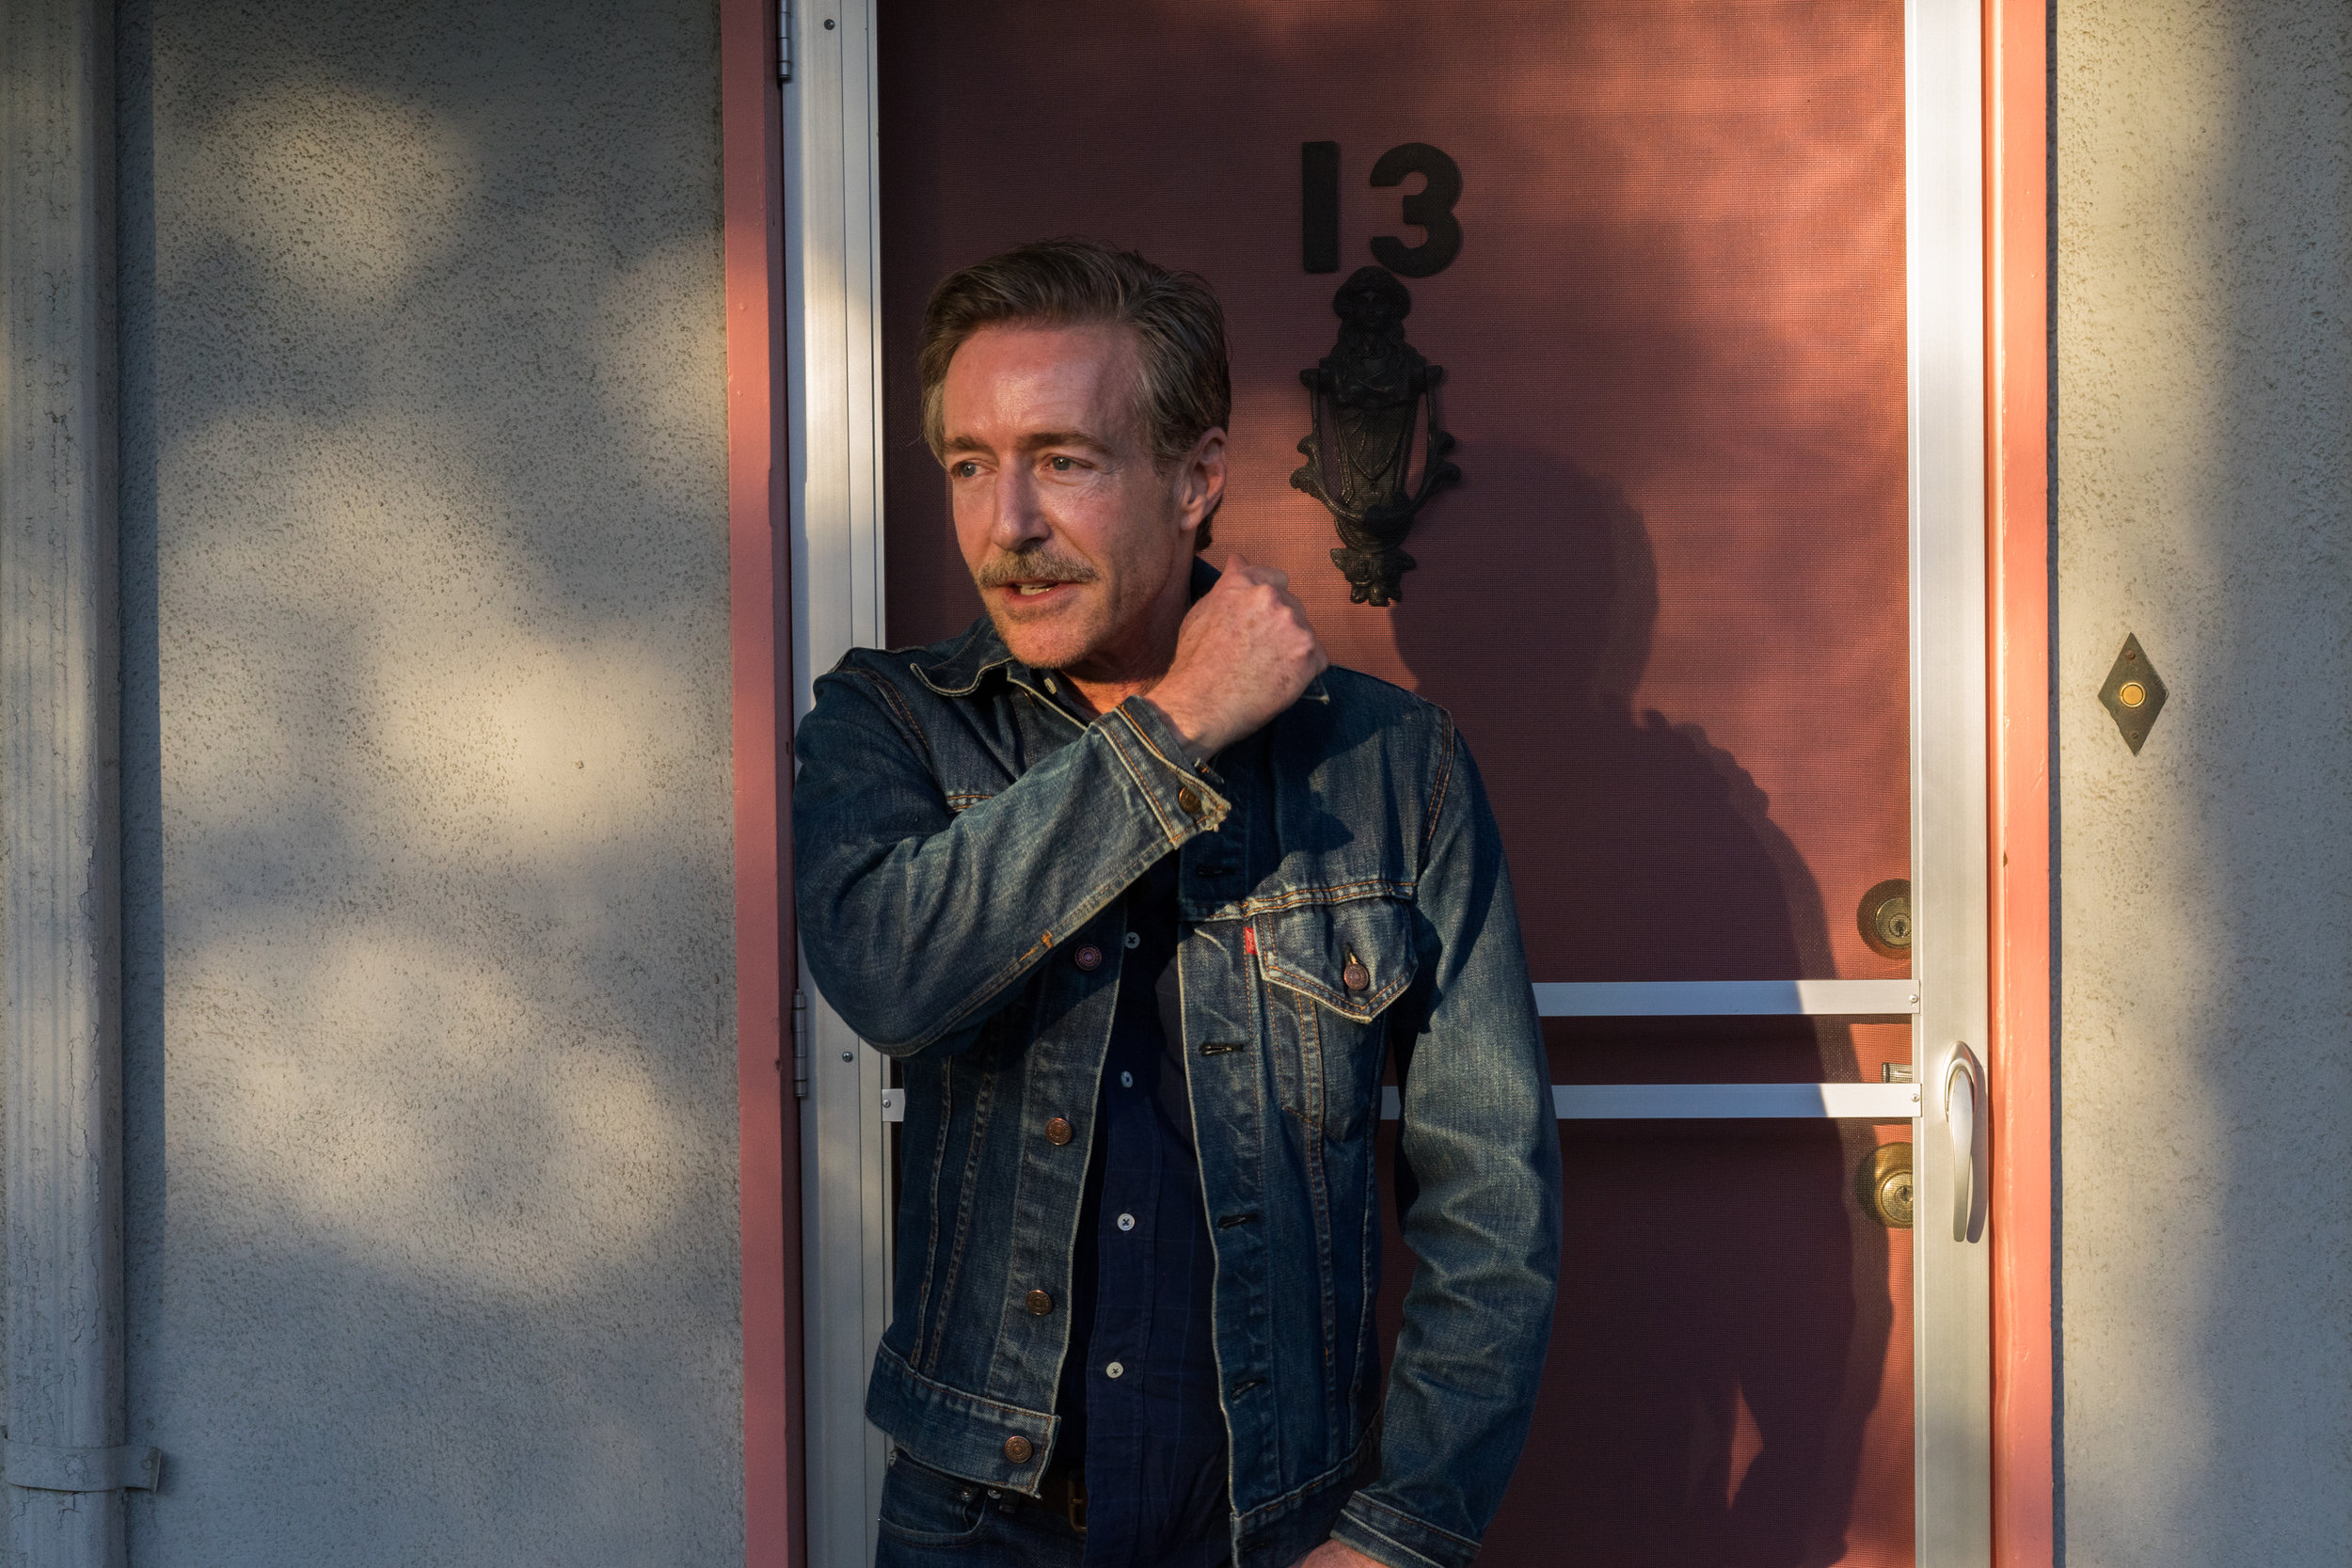 Jeff Burton, Silver Lake, Los Angeles, CA, 2019.  Photo by Jordan Weitzman